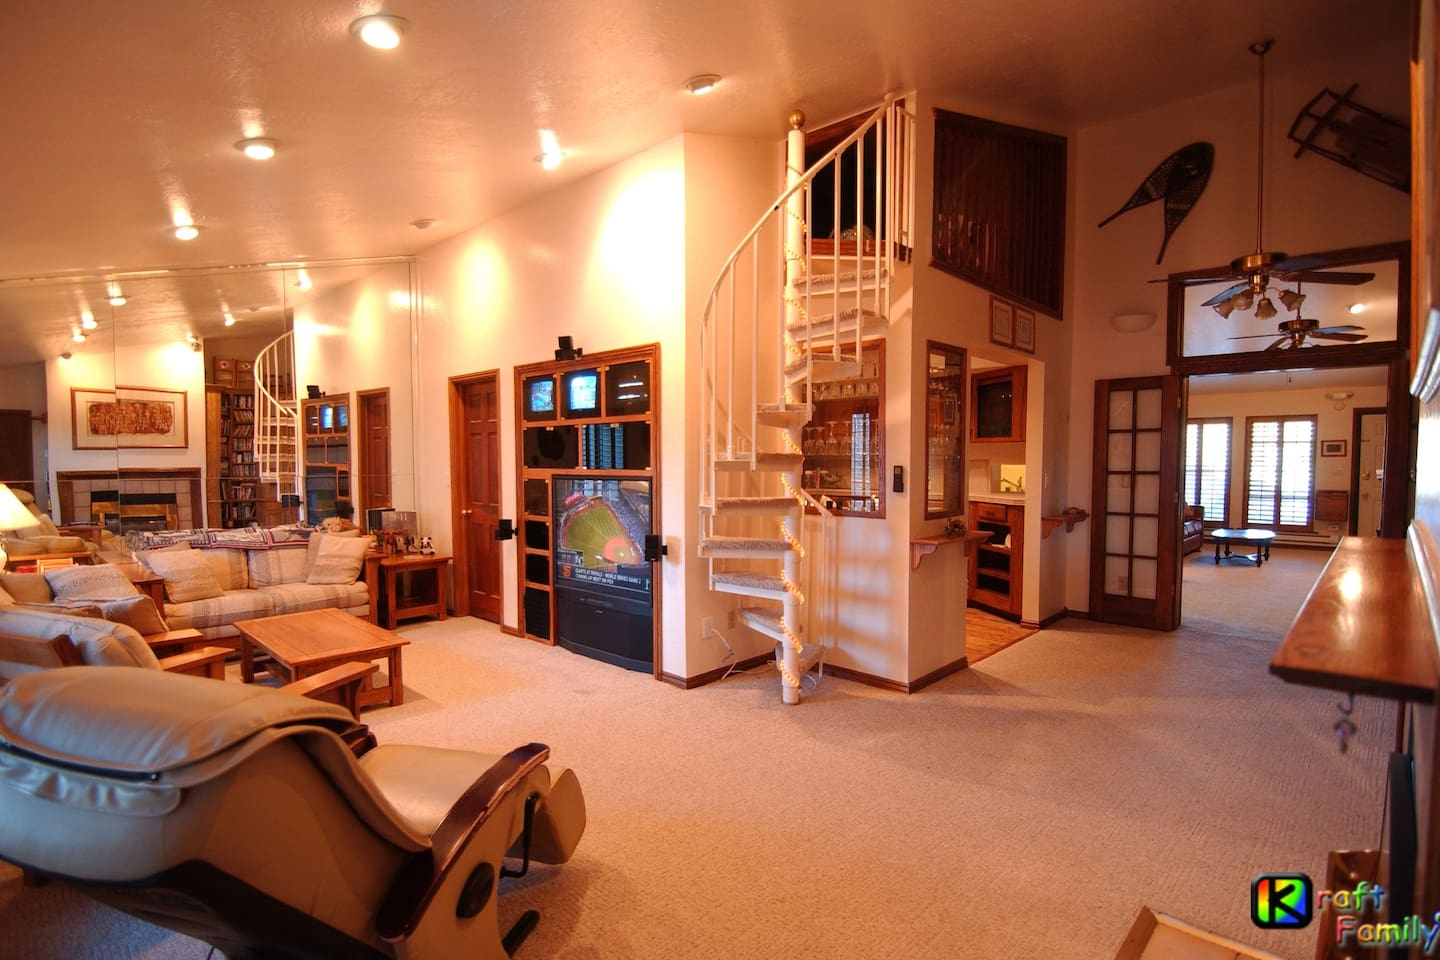 Living Room shared with other guests.  Five TV's in entertainment center with cable TV and DVD.